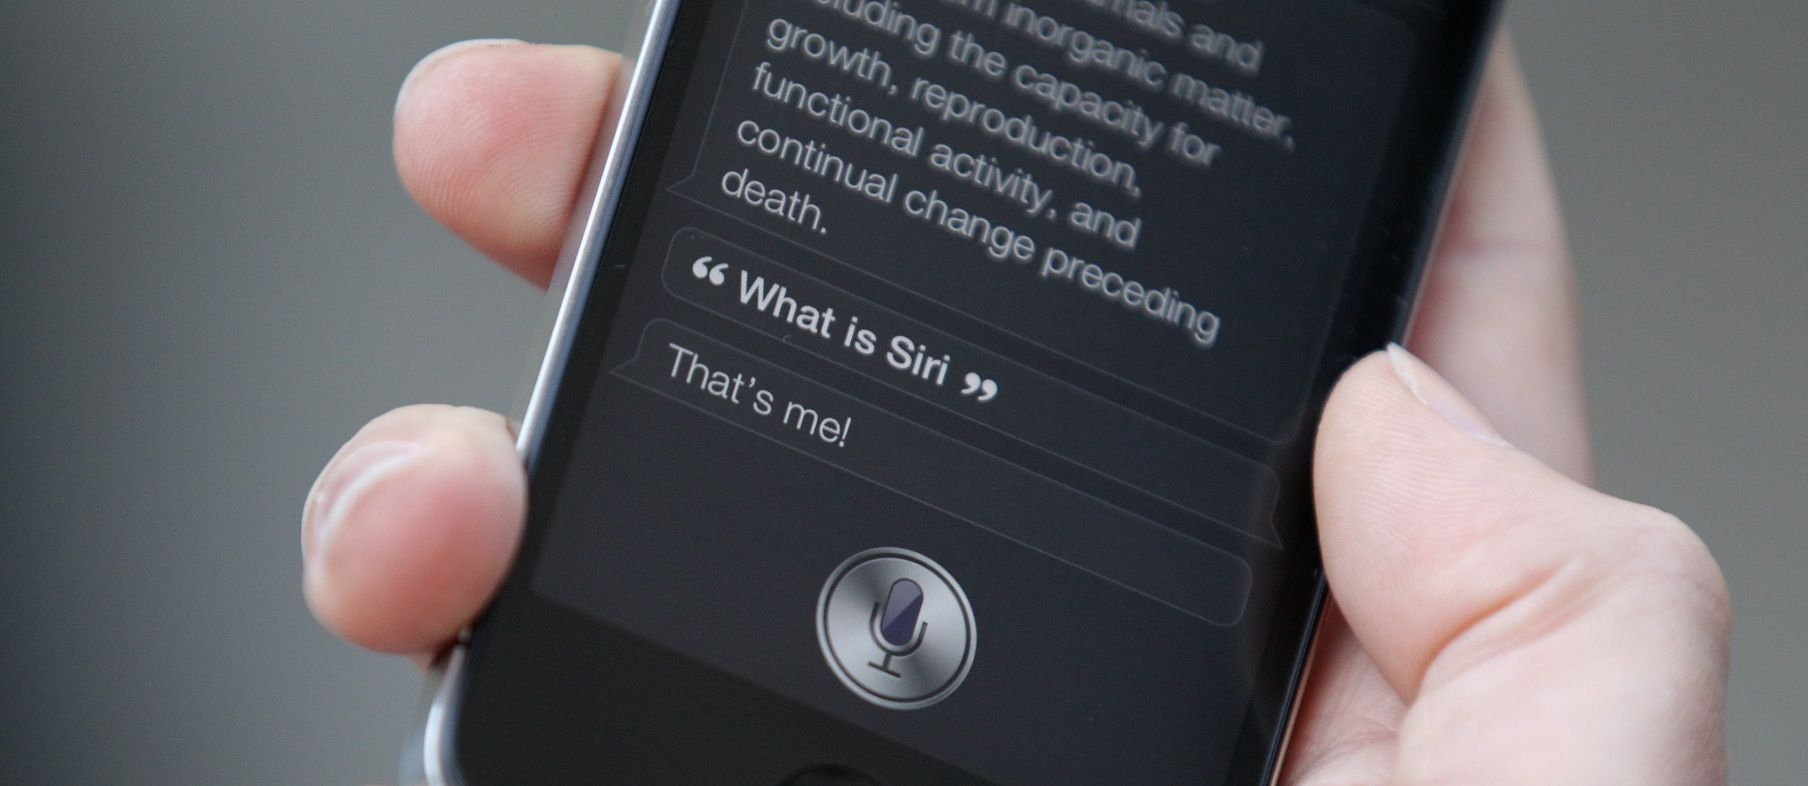 Apple Announces HandsFree 'Hey, Siri' for iOS 8 Iphone